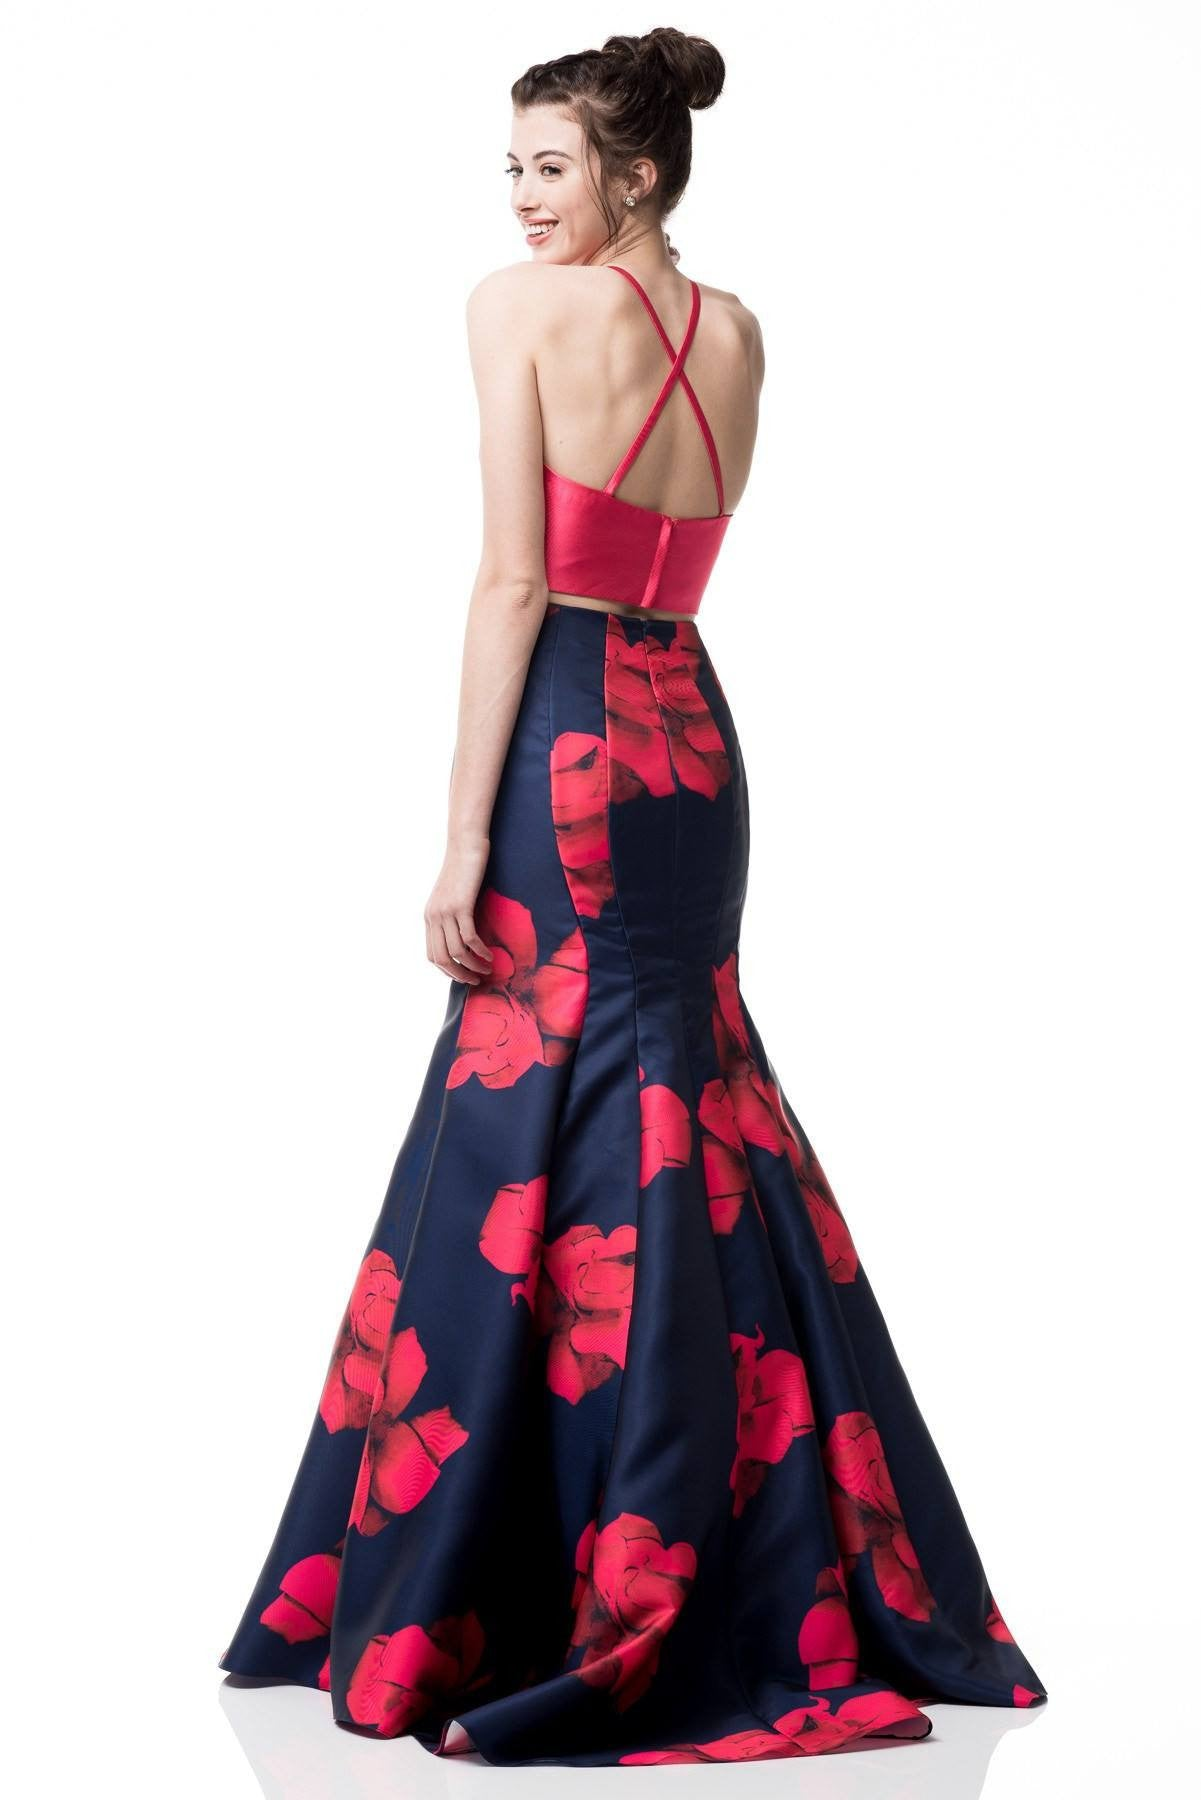 Sexy formal dress Bc#CB12195 - Simply Fab Dress